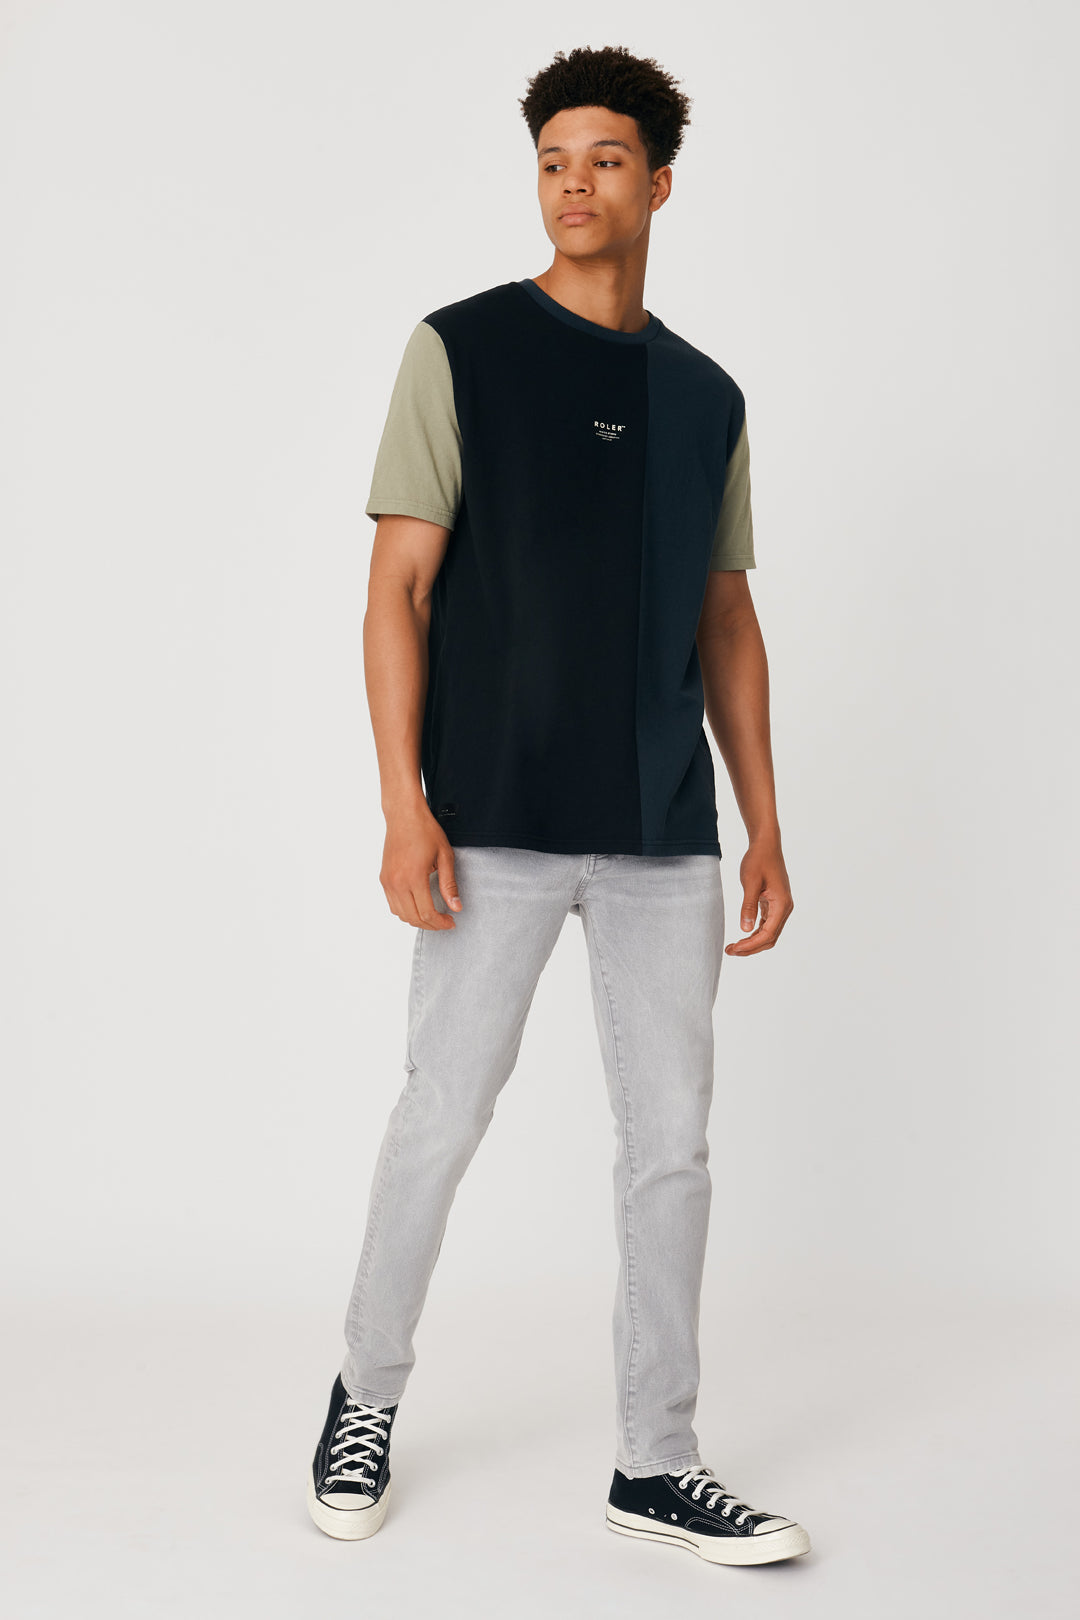 The Brannan Tee - Black Teal - Roler Clothing